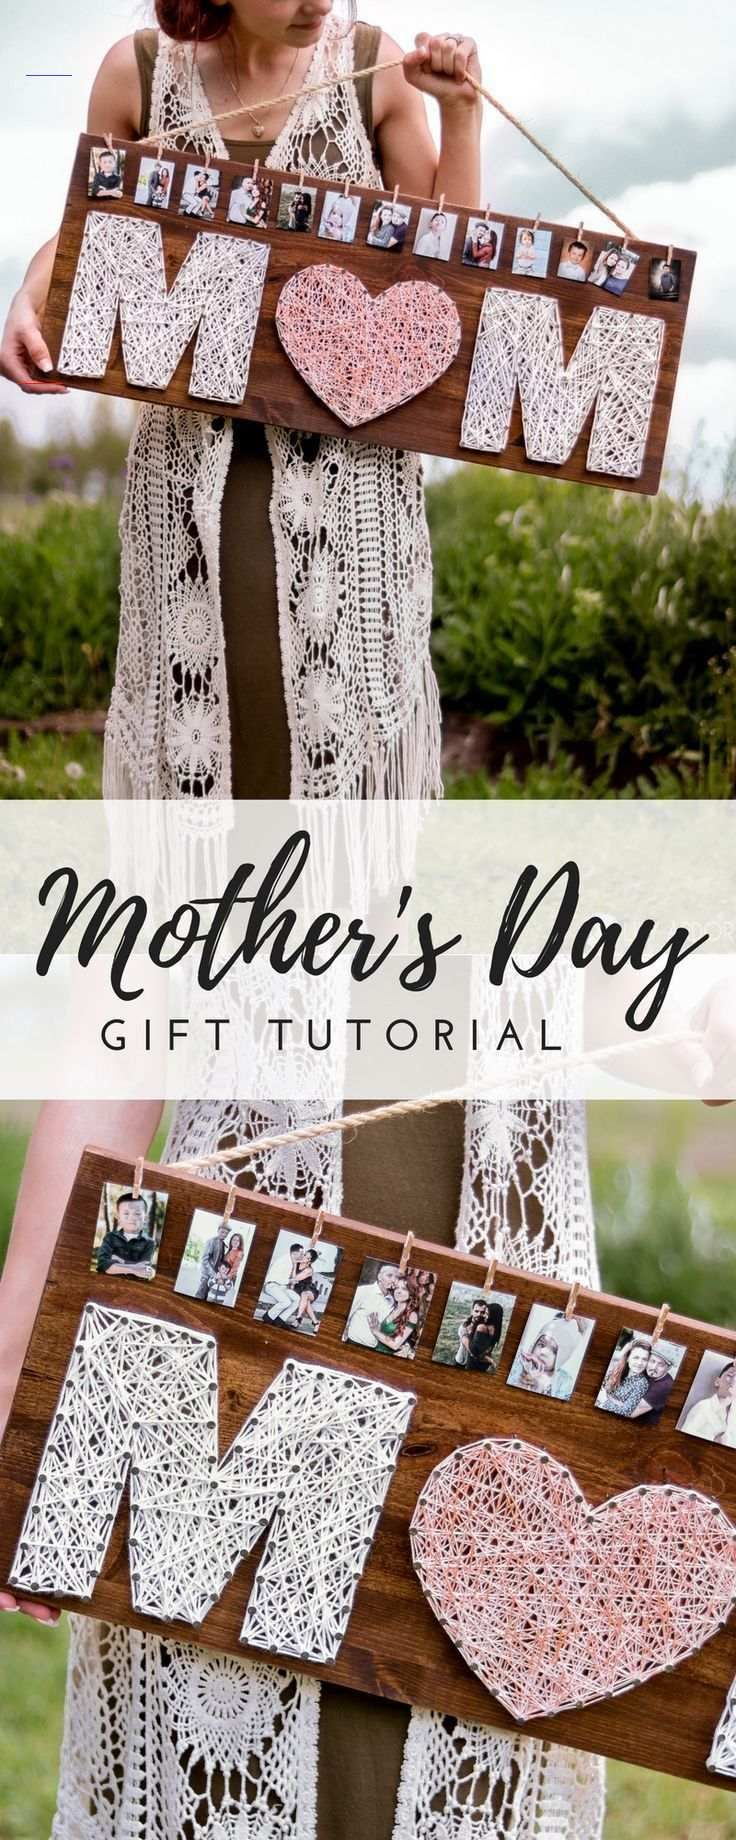 cheapgiftideas in 2020 Homemade mothers day gifts, Diy